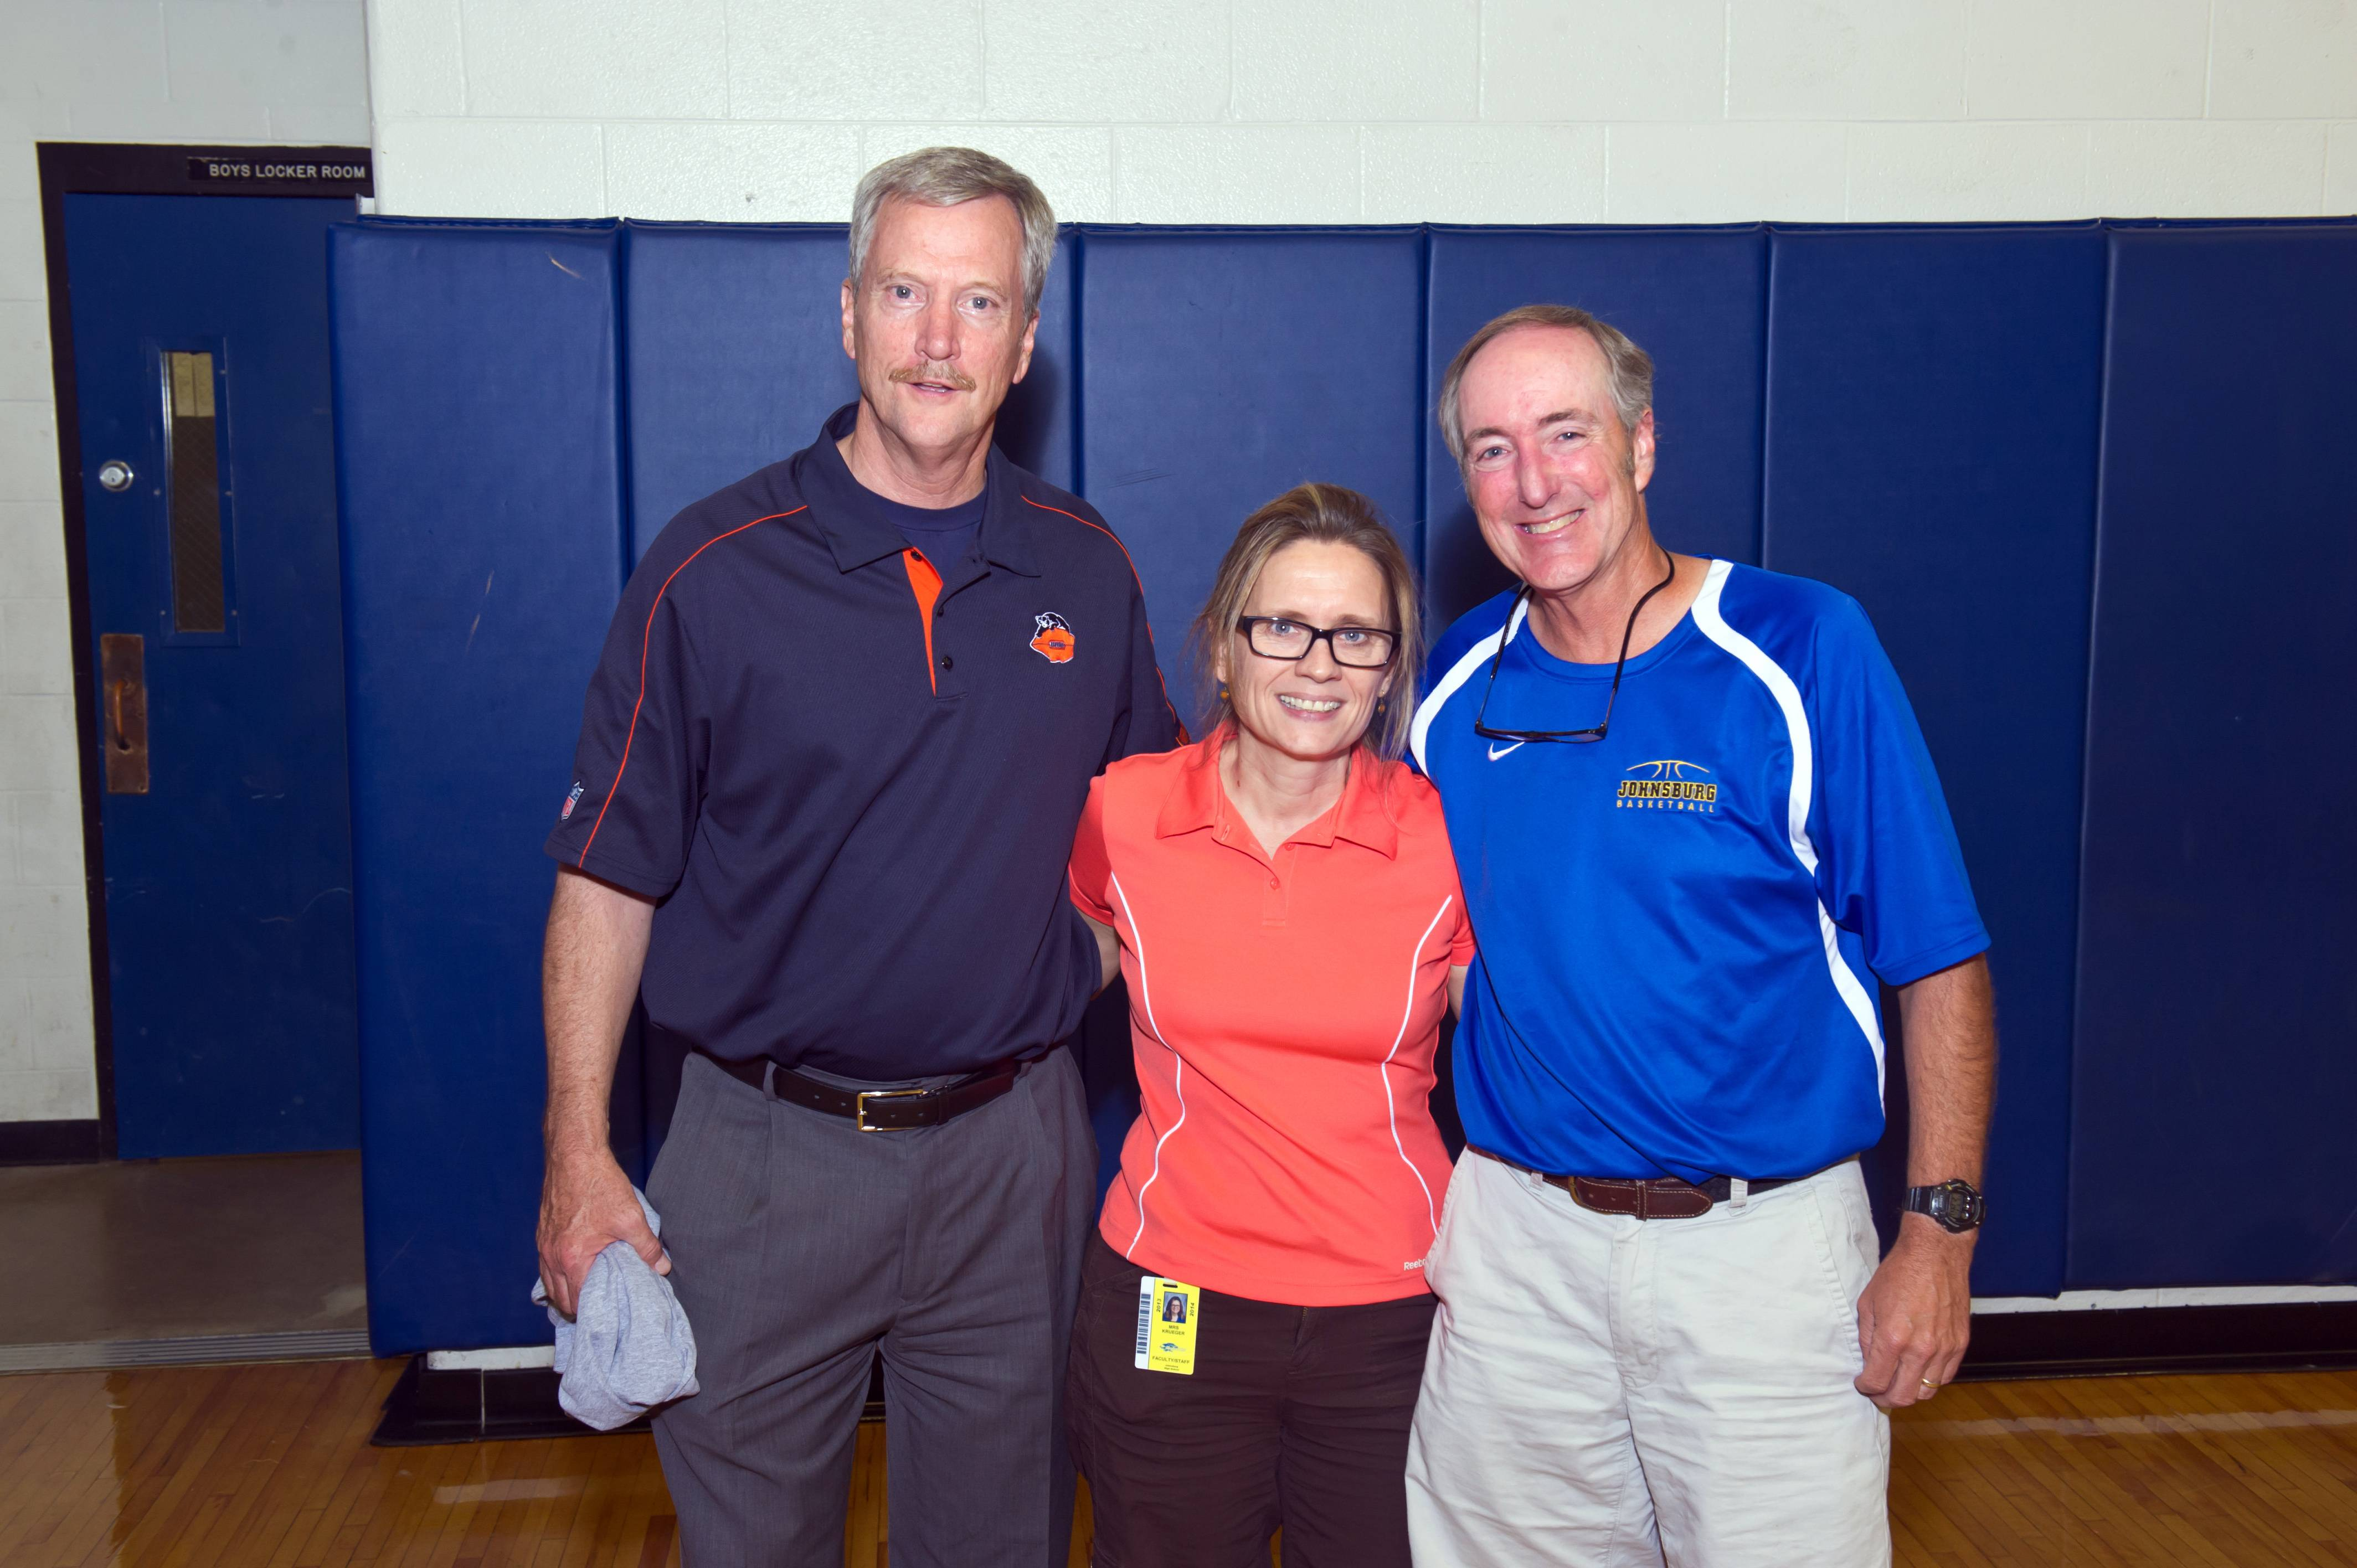 Symetra Heroes in the Classroom honoree Rick Bailey (right) is congratulated by Chicago Bears Chairman George McCaskey (left) and fellow Johnsburg High School teacher Judy Krueger (center), who nominated Bailey for the award, which recognizes educational excellence.